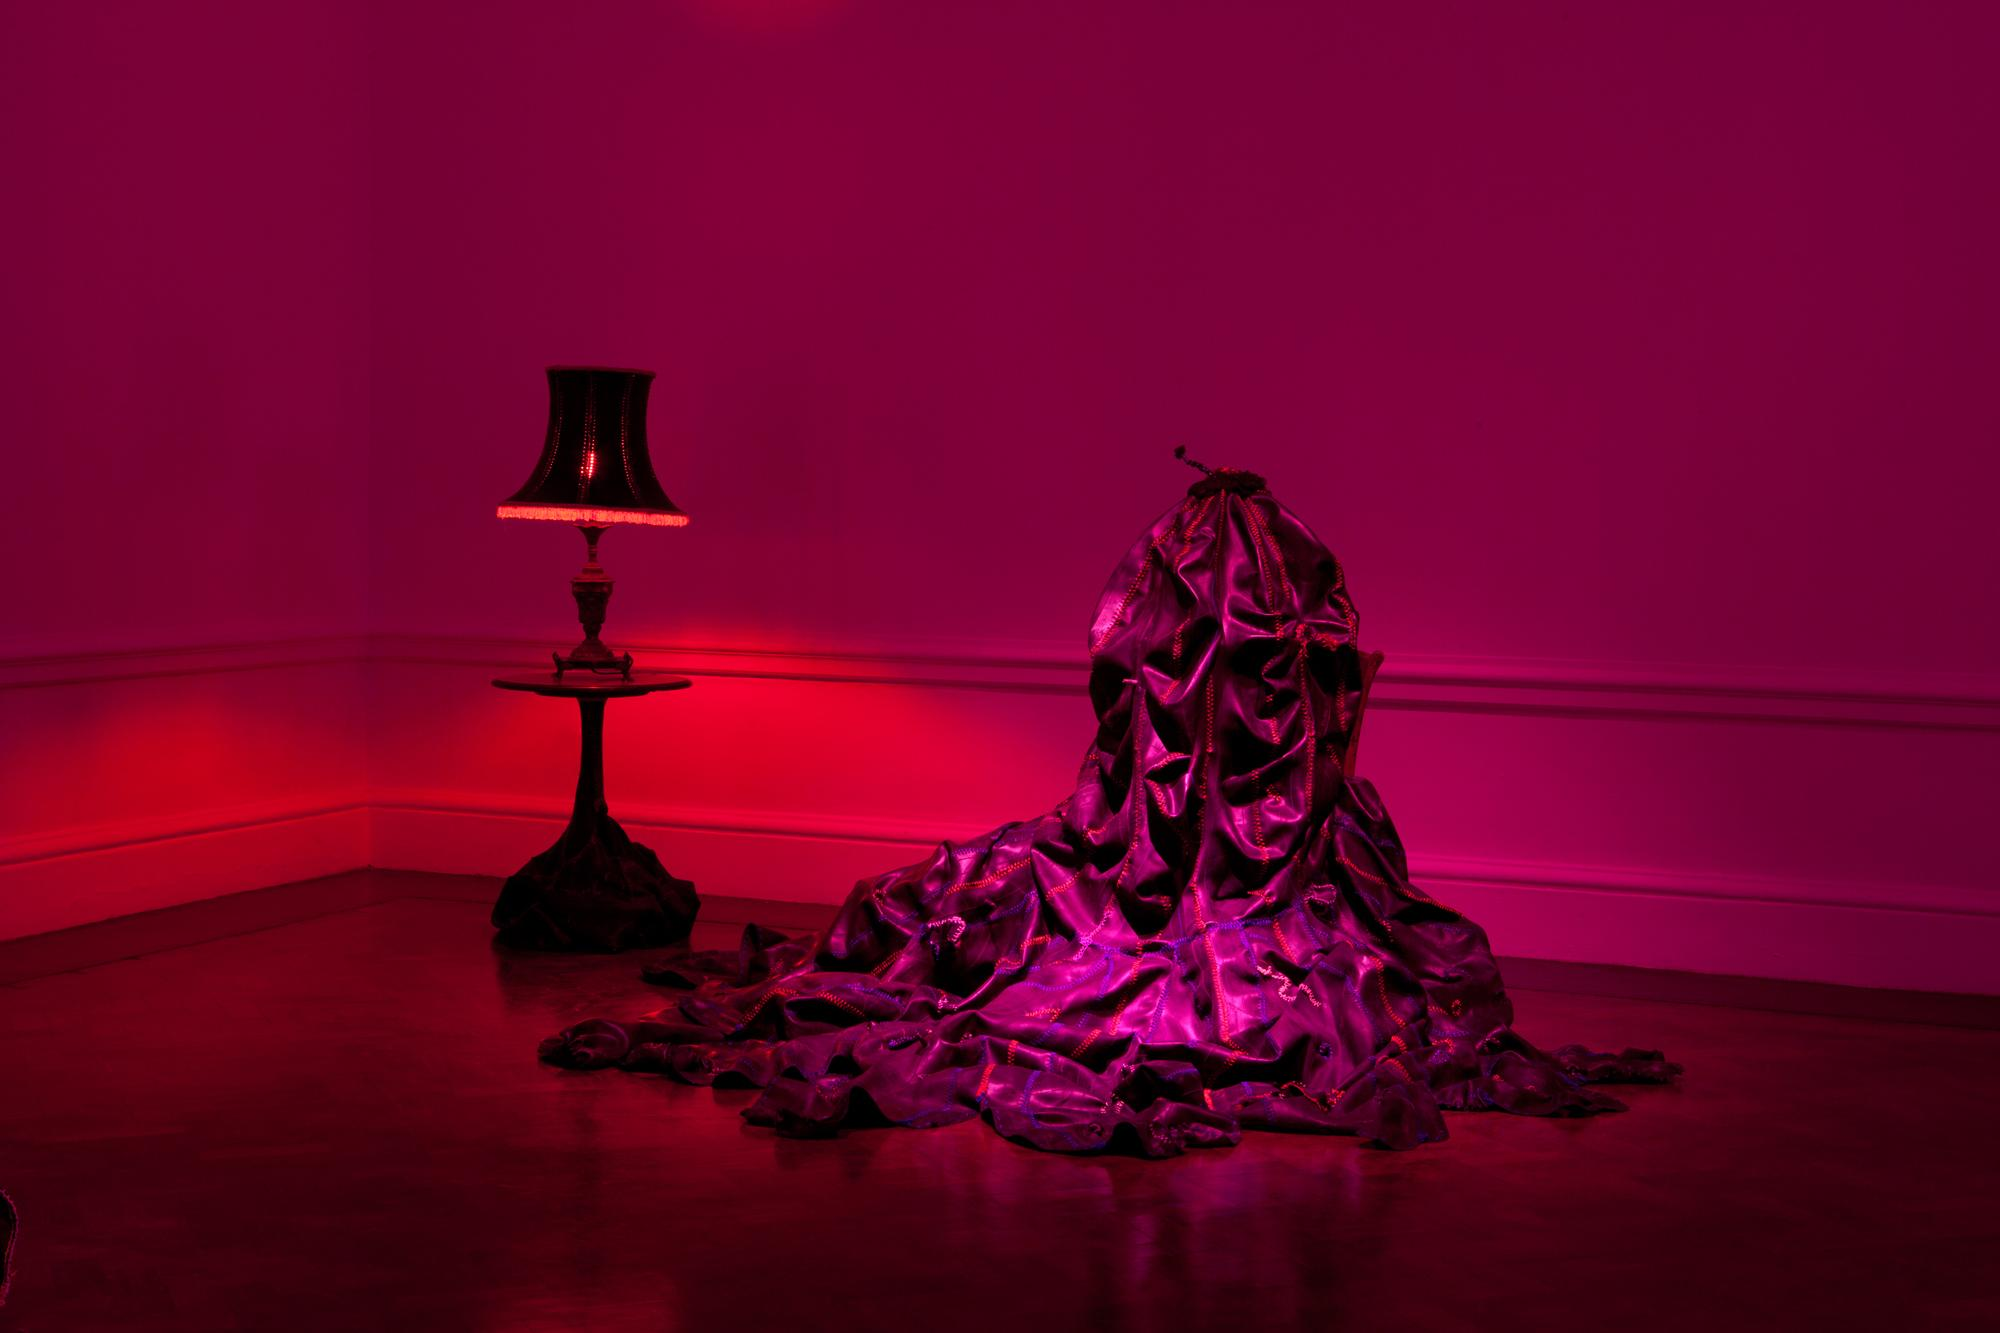 """This undated image released by Nicholas Hlobo and Stevenson shows the art piece """"Kubomvu (2009),"""" made from a found table, found lamp, rubber inner tube, ribbon and red light bulb. The work will appear as part of South African artist Nicholas Hlobo's new installation """"Intethe (Sketch for an Opera)"""" at Locust Projects in Miami during Art Basel Miami Beach, Dec. 5-8. (AP Photo/Nicholas Hlobo and Stevenson)"""